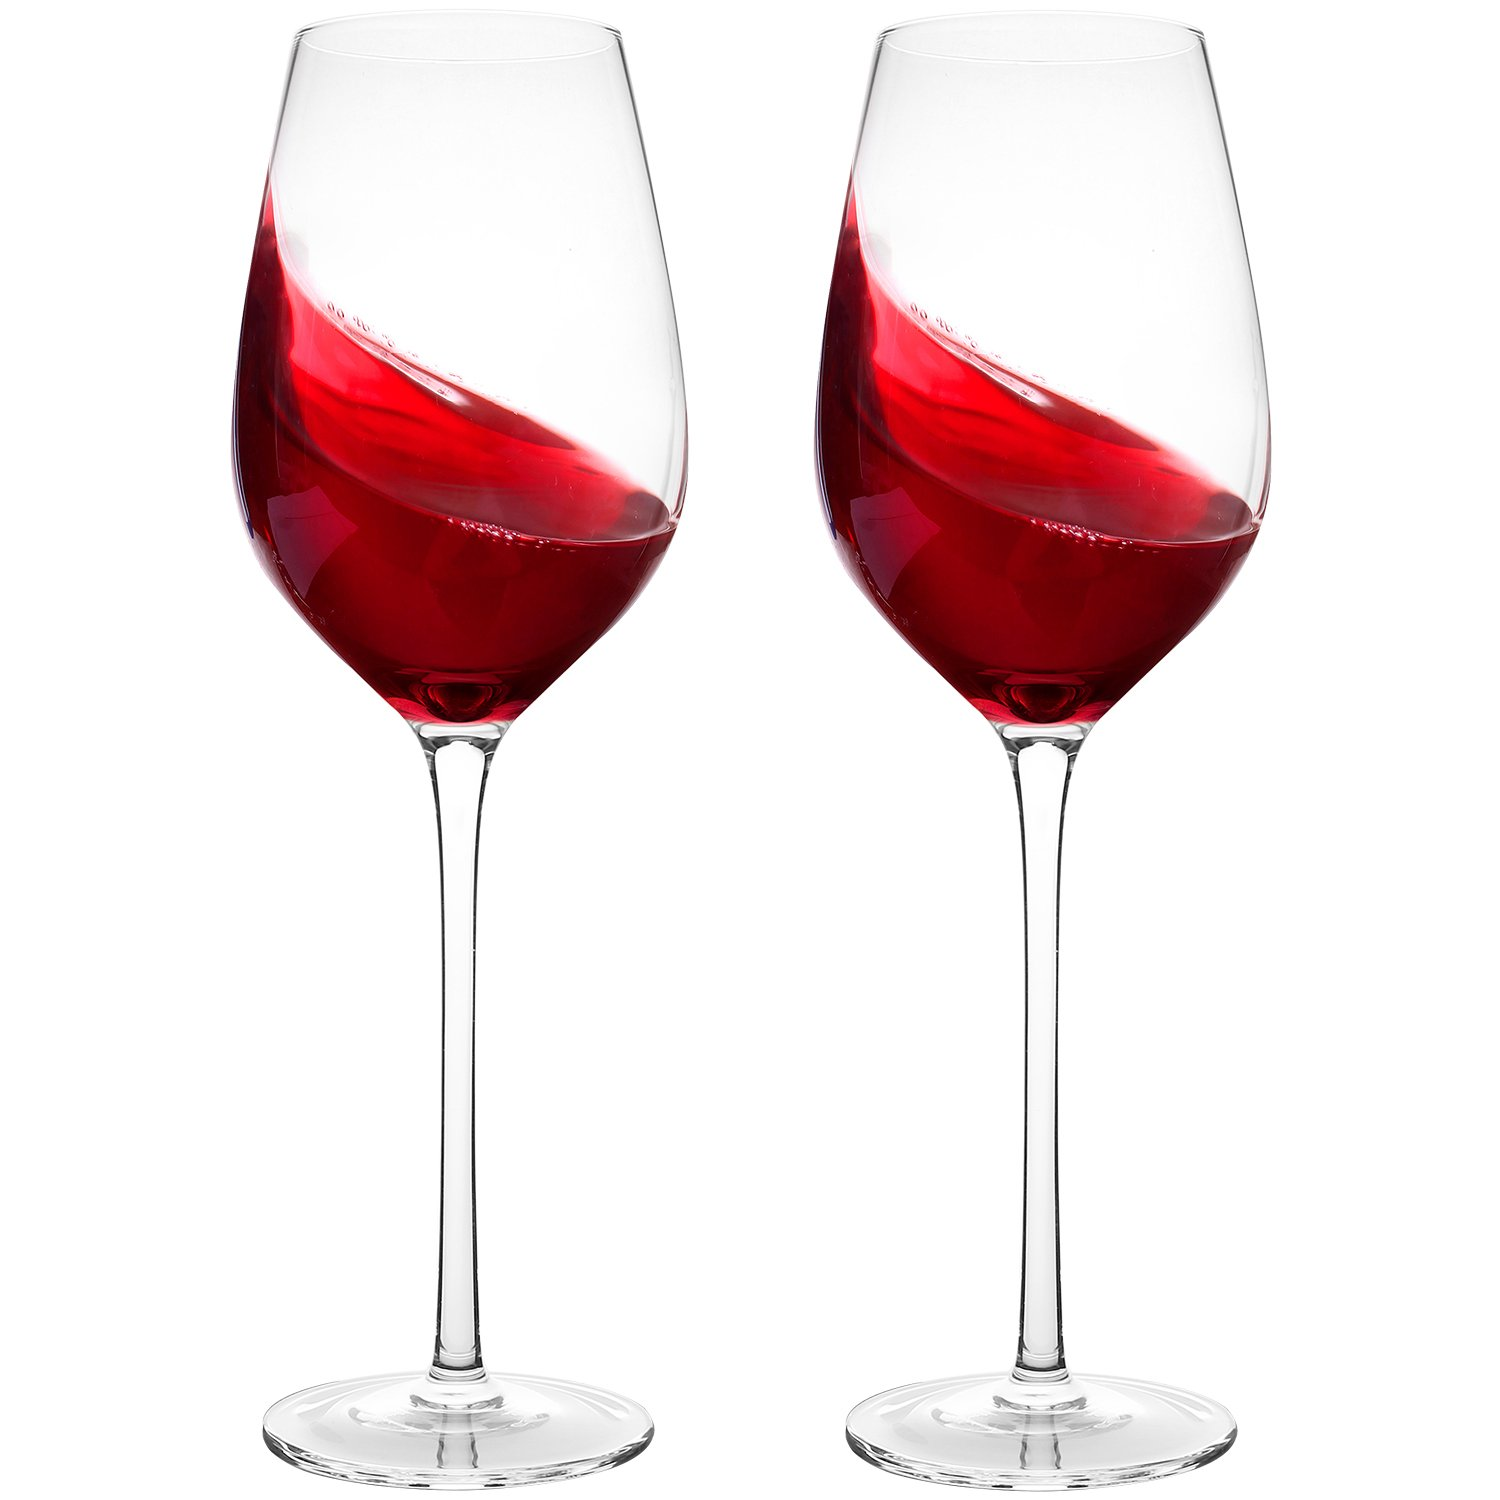 Hand Blown Crystal Wine Glasses Set of 2 - Bella Vino Standard Red/White Wine Glass Made from 100% Lead Free Premium Crystal Glass, 14 Oz, 9.8